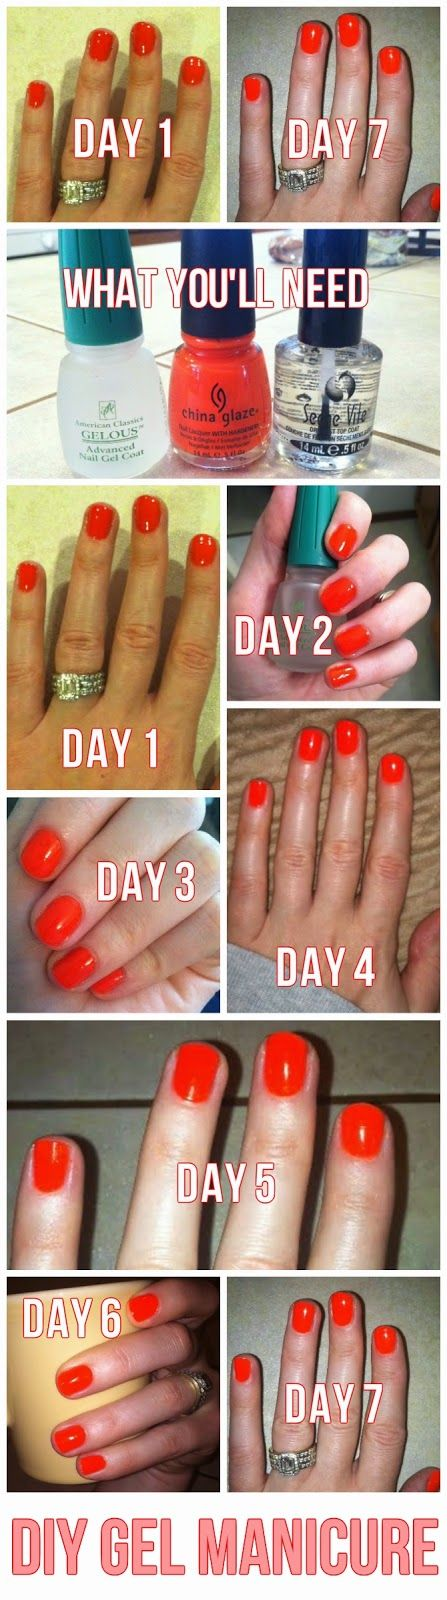 Diy gel manicure with no lamp lets talk about lipstick update diy gel manicure with no lamp lets talk about lipstick update did this and it lasted the whole week with only one chip solutioingenieria Images